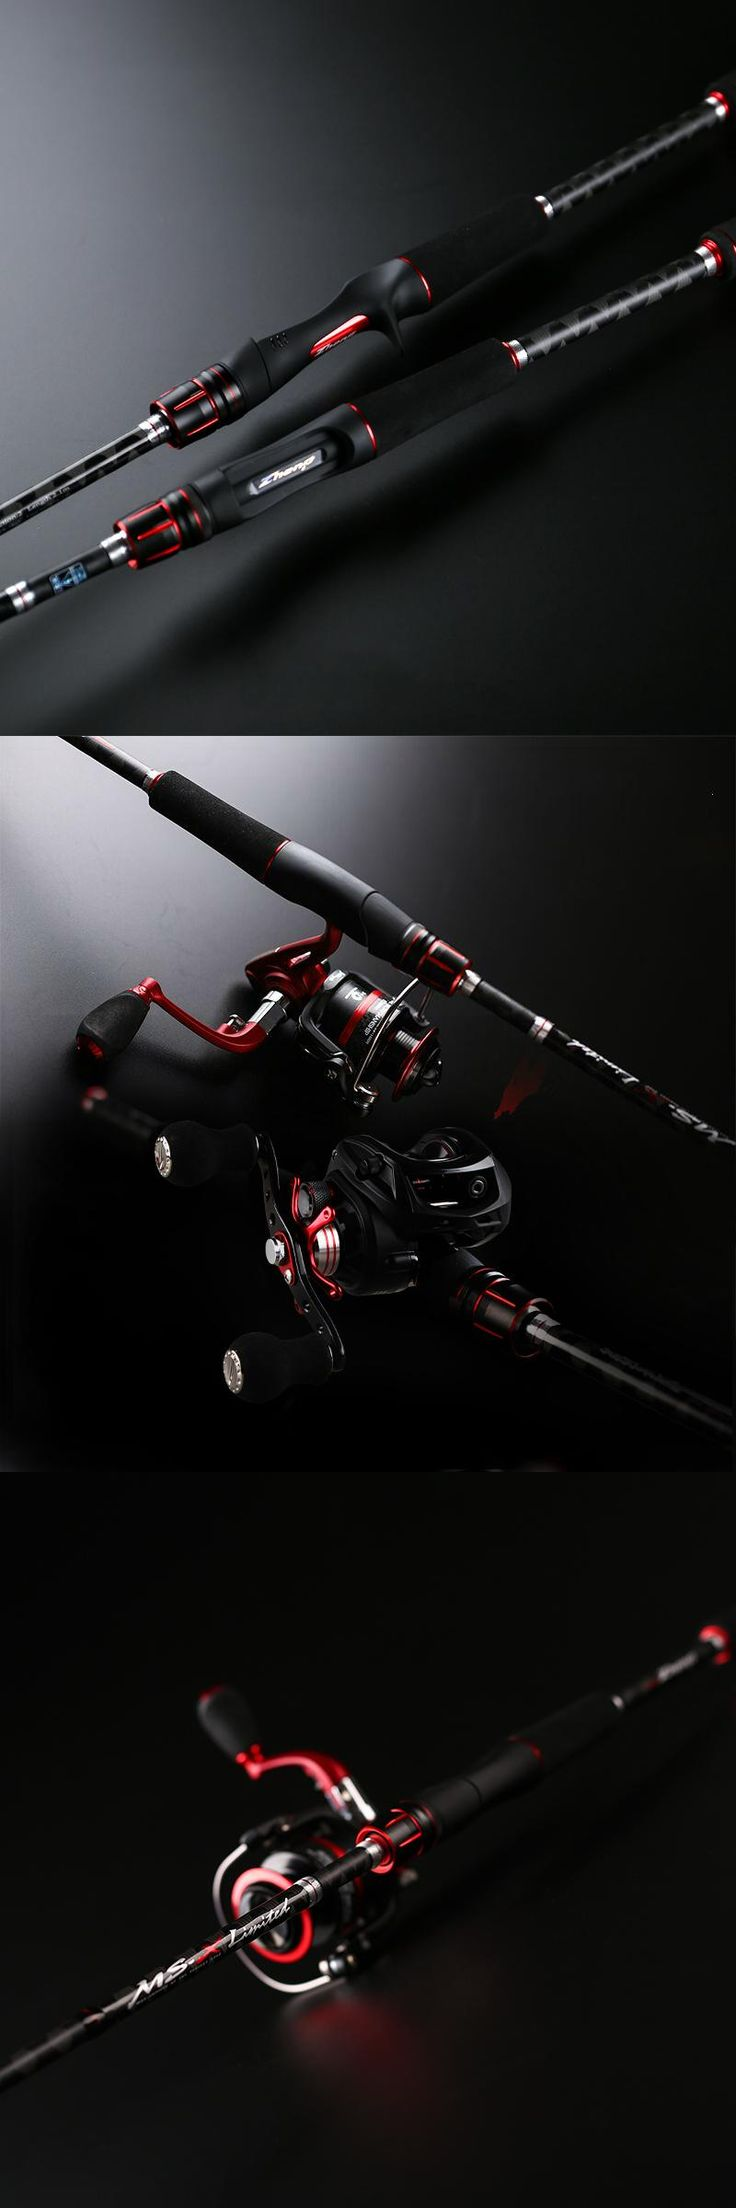 [Visit to Buy] New Fishing Rod 2.1m Baitcasting Rod and Spinning Fishing Pole Bass Fishing Tackle Lure Fishing Gear With FUJI Guide #Advertisement